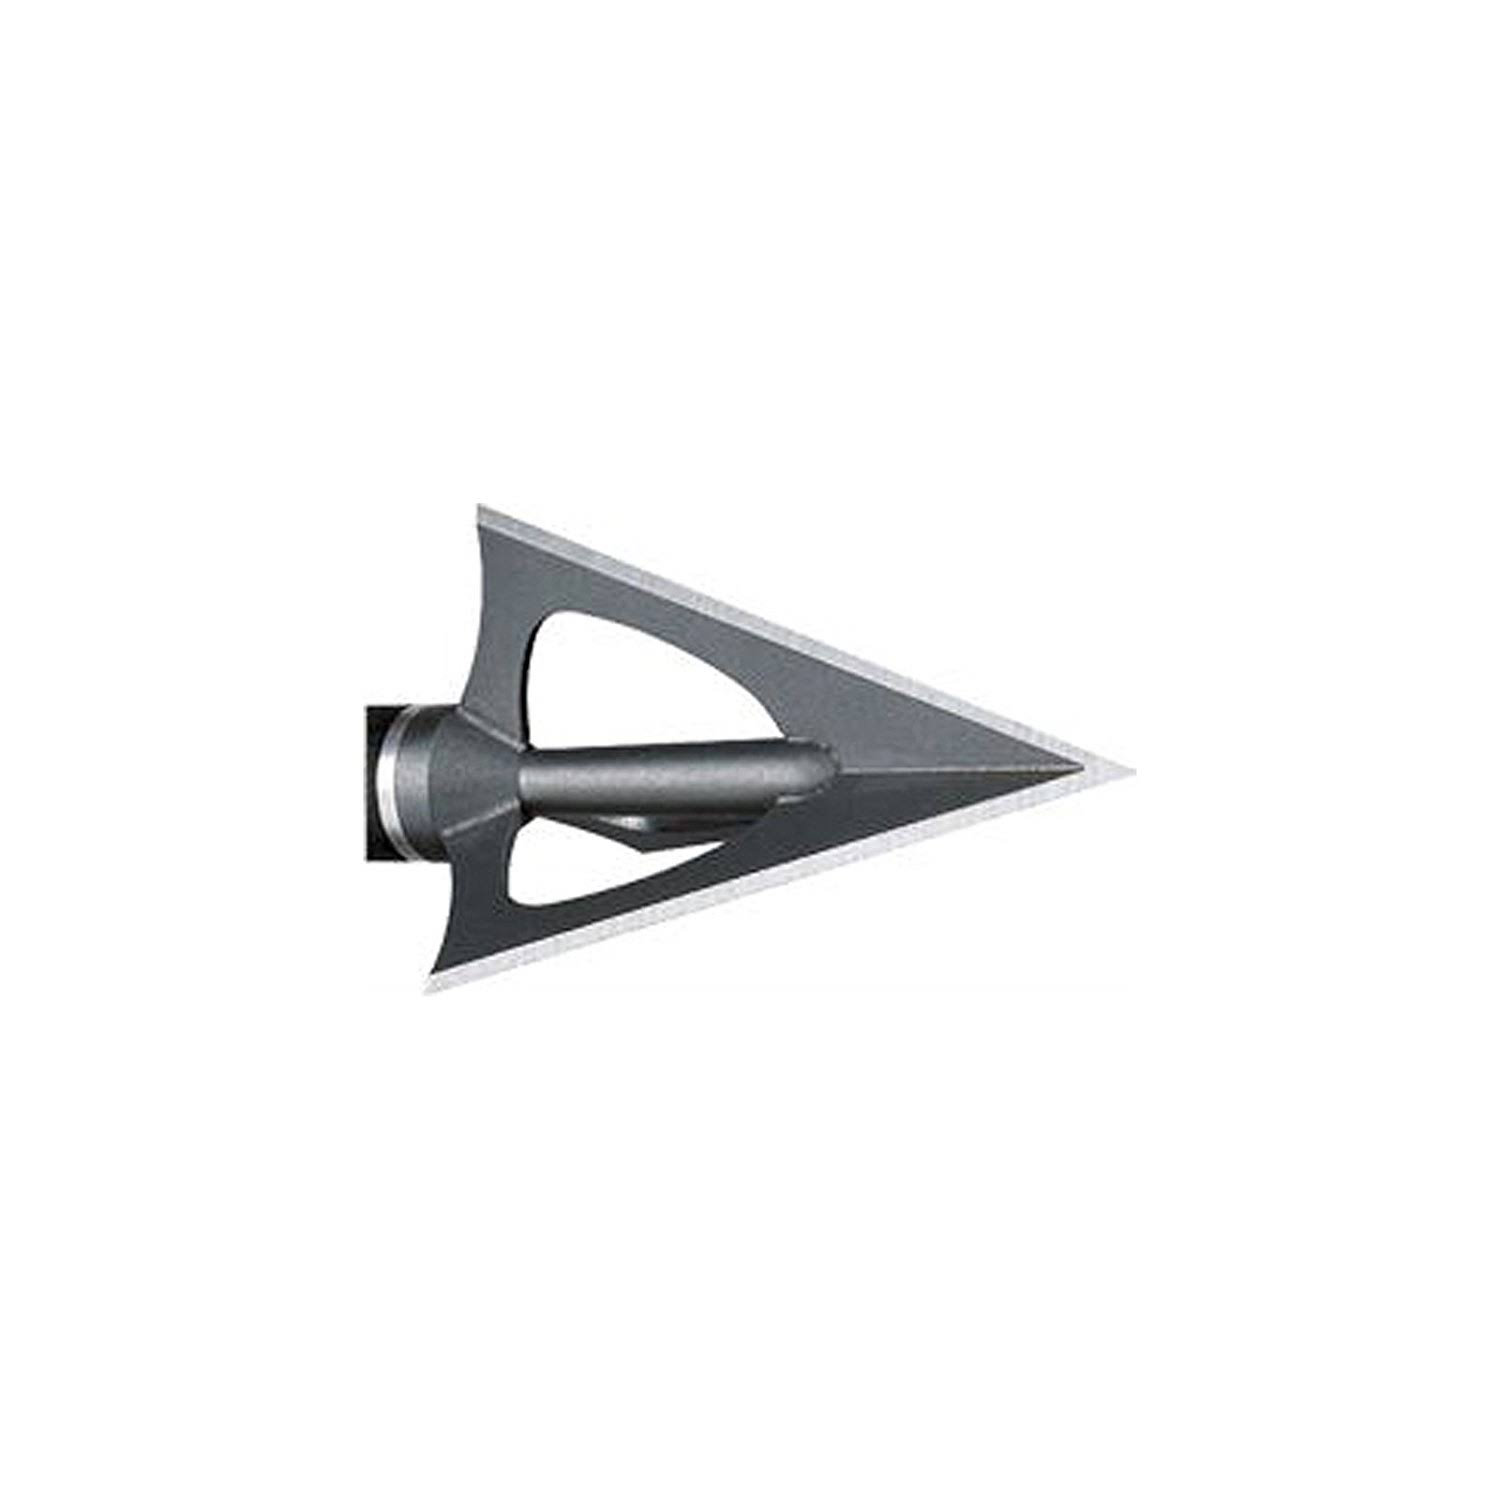 Archery Products 60-411 Hellrazor Broadheads